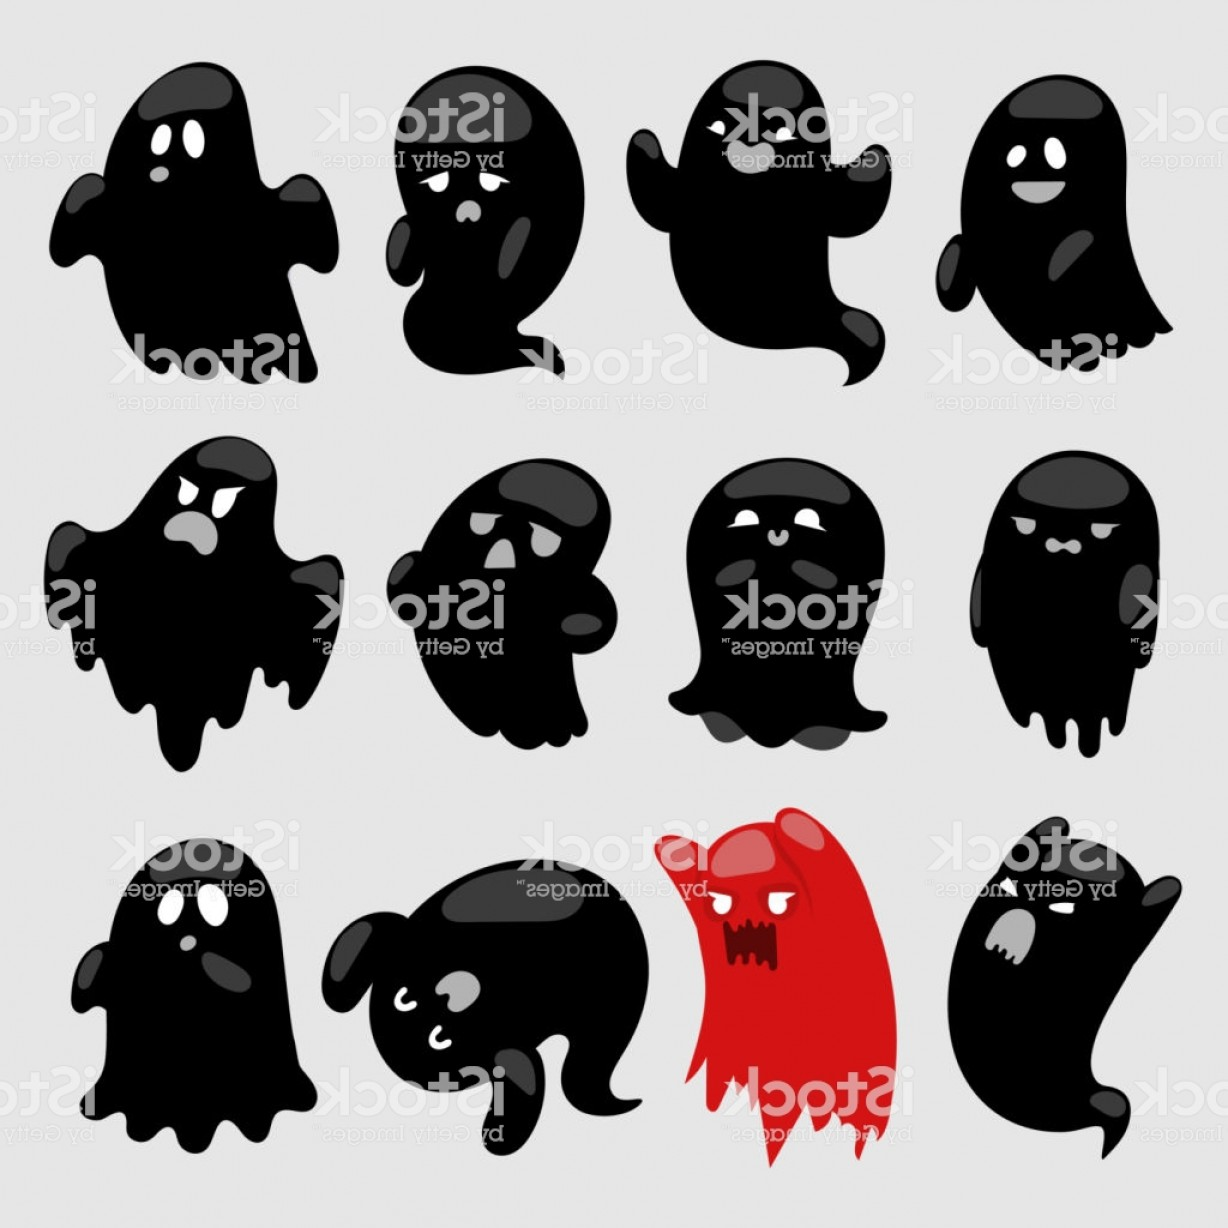 Ghost Vector Black: Cartoon Spooky Ghost Vector Character Illsutartion Black And Red Spooky Scary Gm